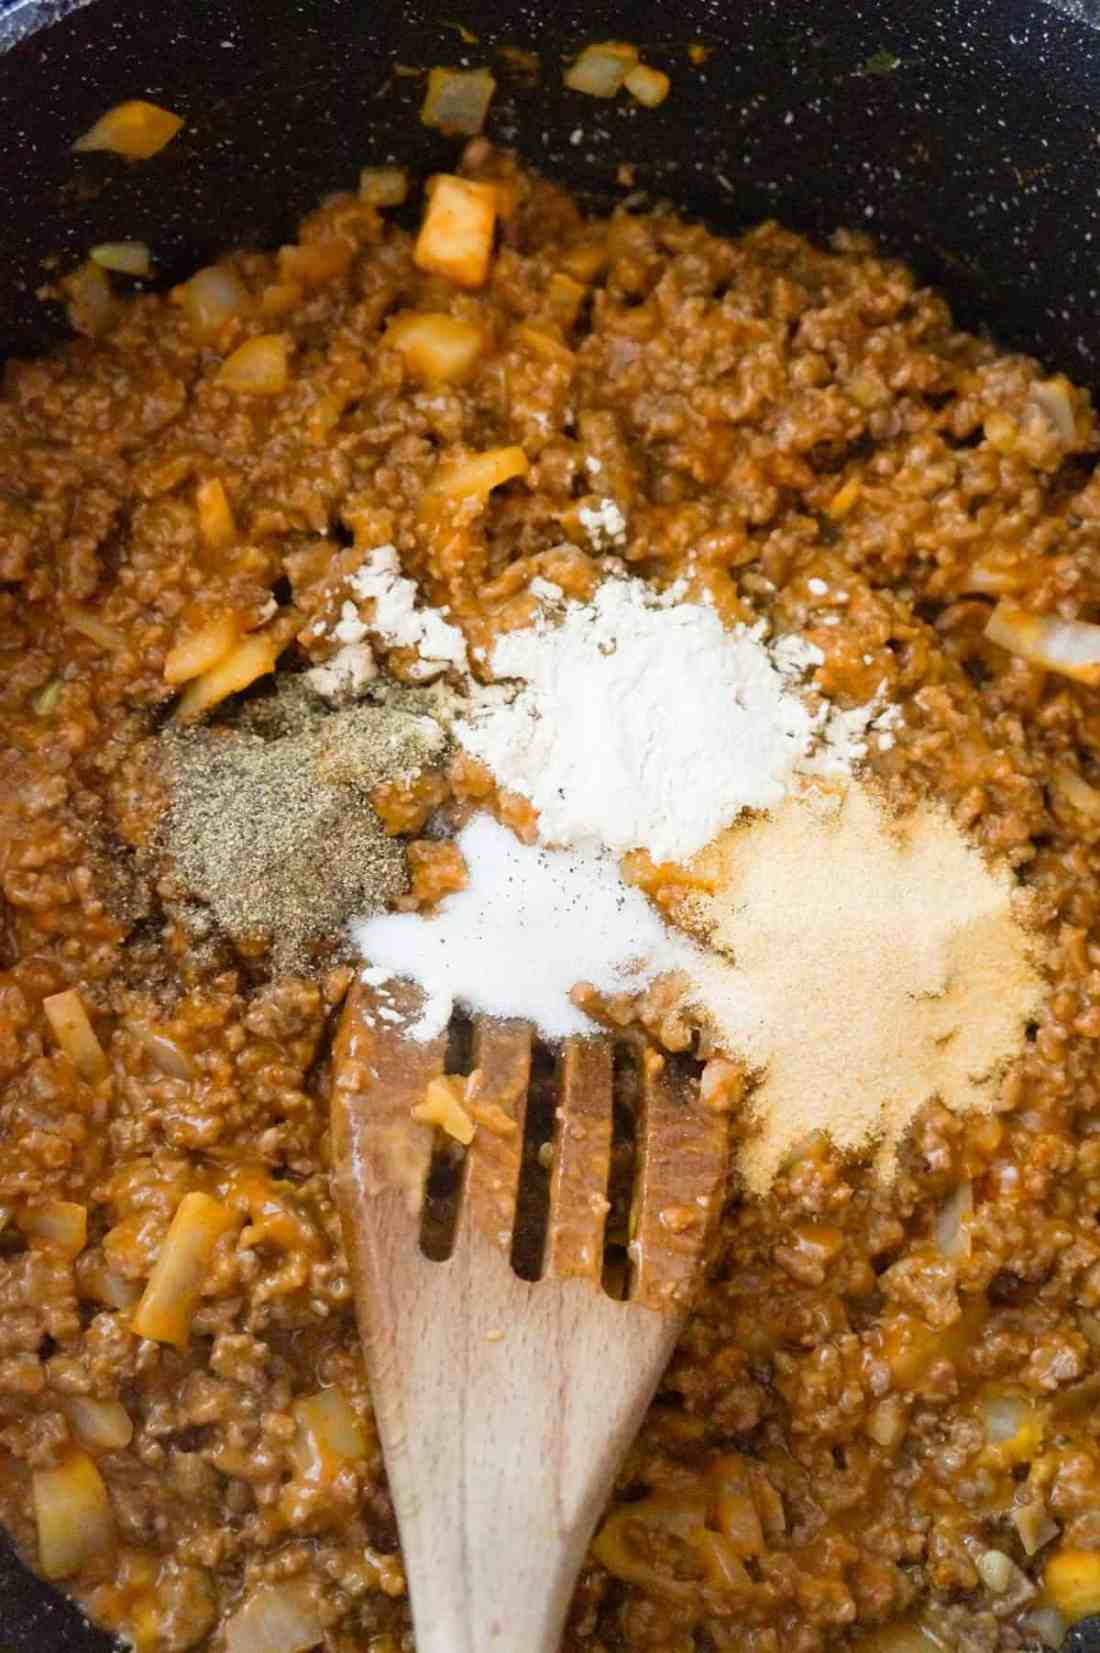 spices on top of ground beef mixture in a saute pan